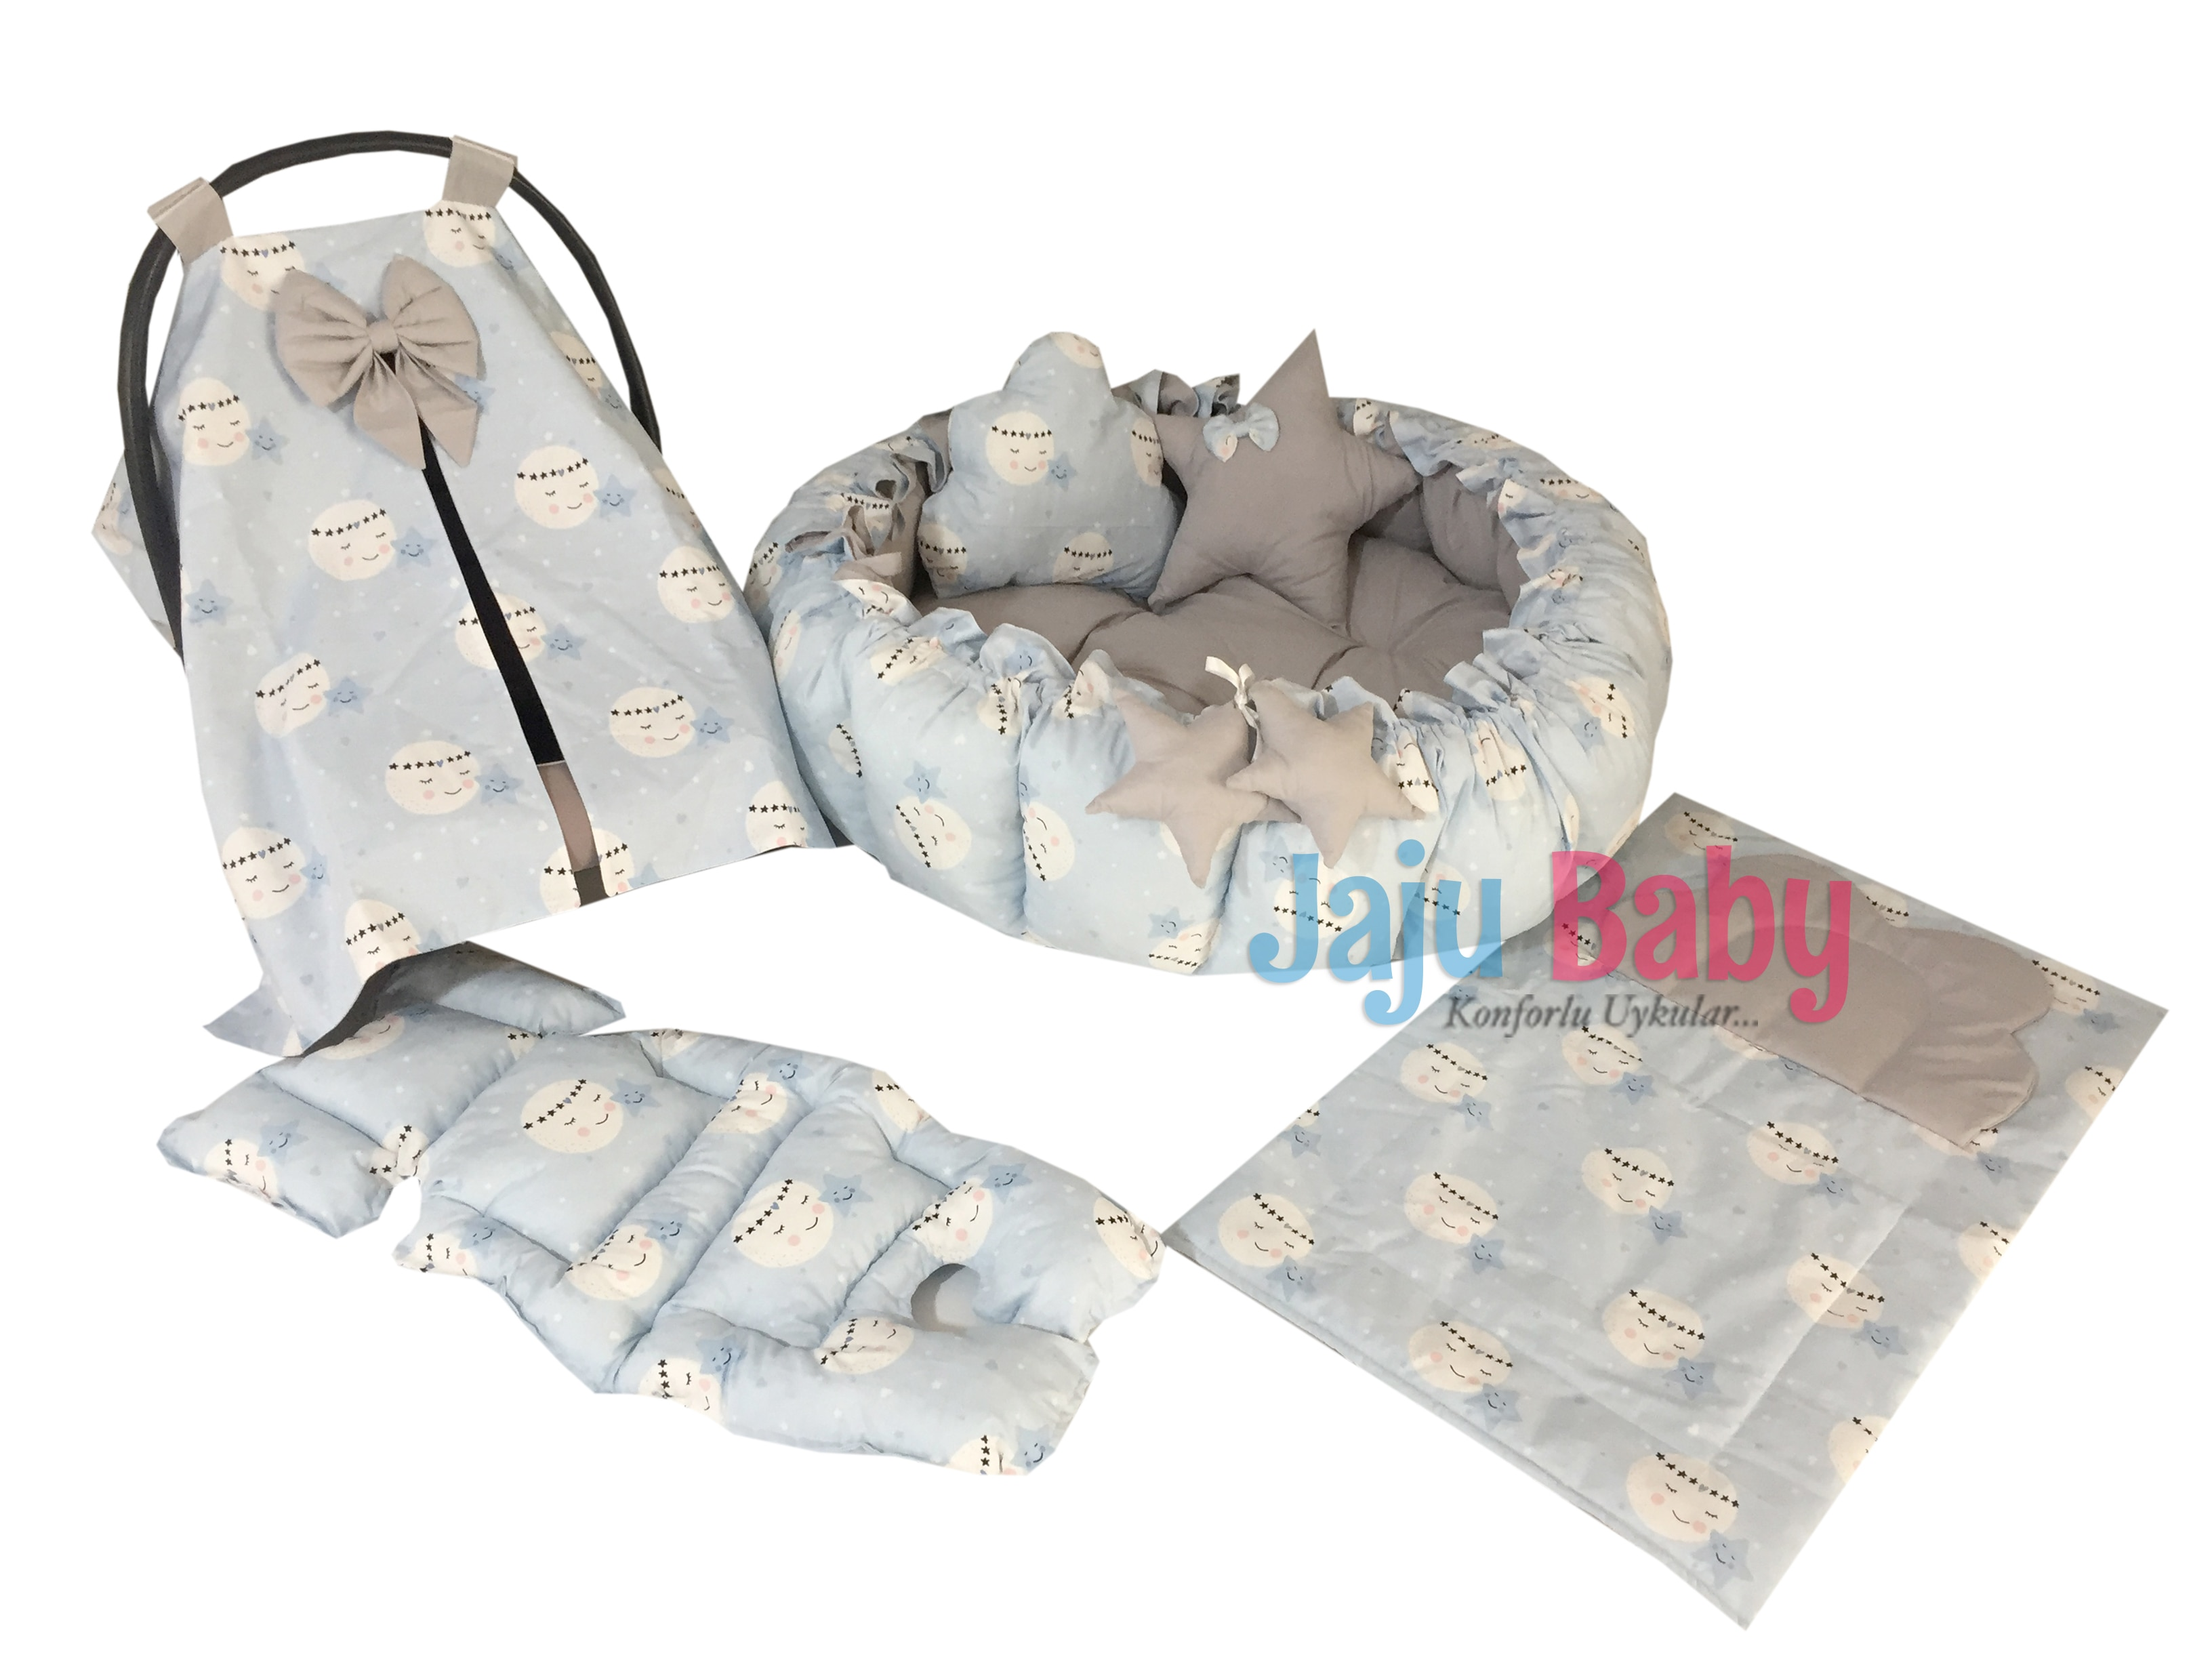 Jaju Baby Blue Moon Patterned Set Design Luxury Play Mat Babynest Babynest, Mother's Side Baby Bed, Retractable Play Mat